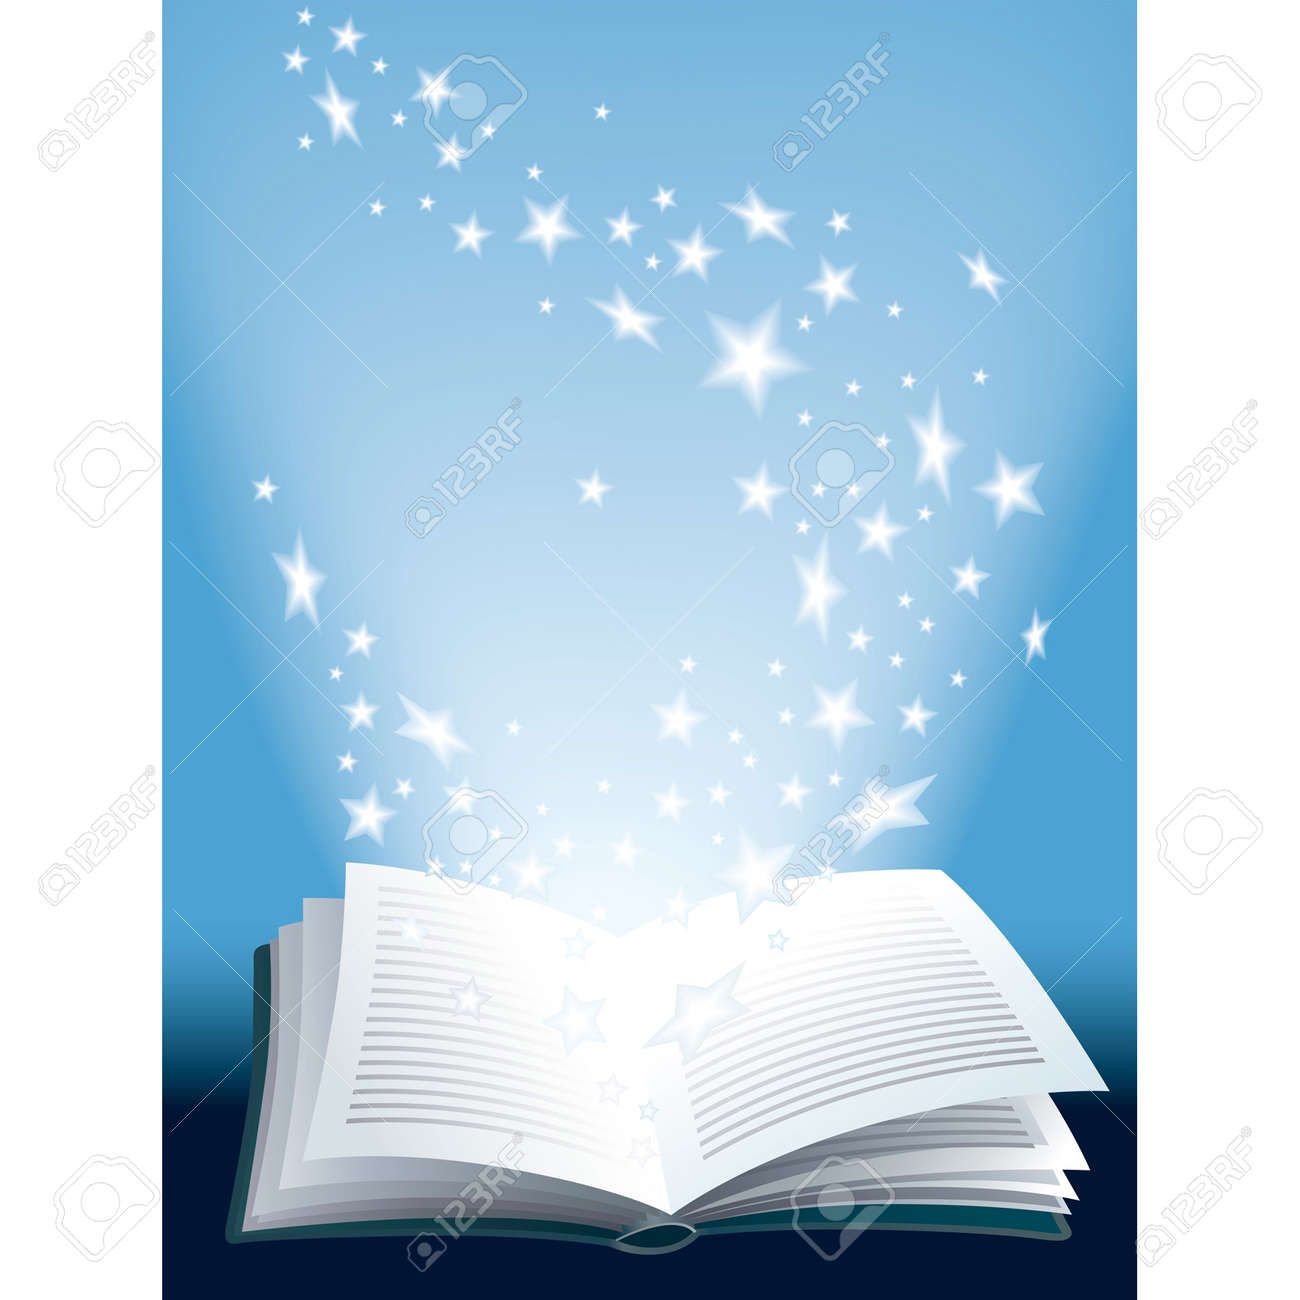 Open Magic Book With Flying Shining Stars Royalty Free Cliparts